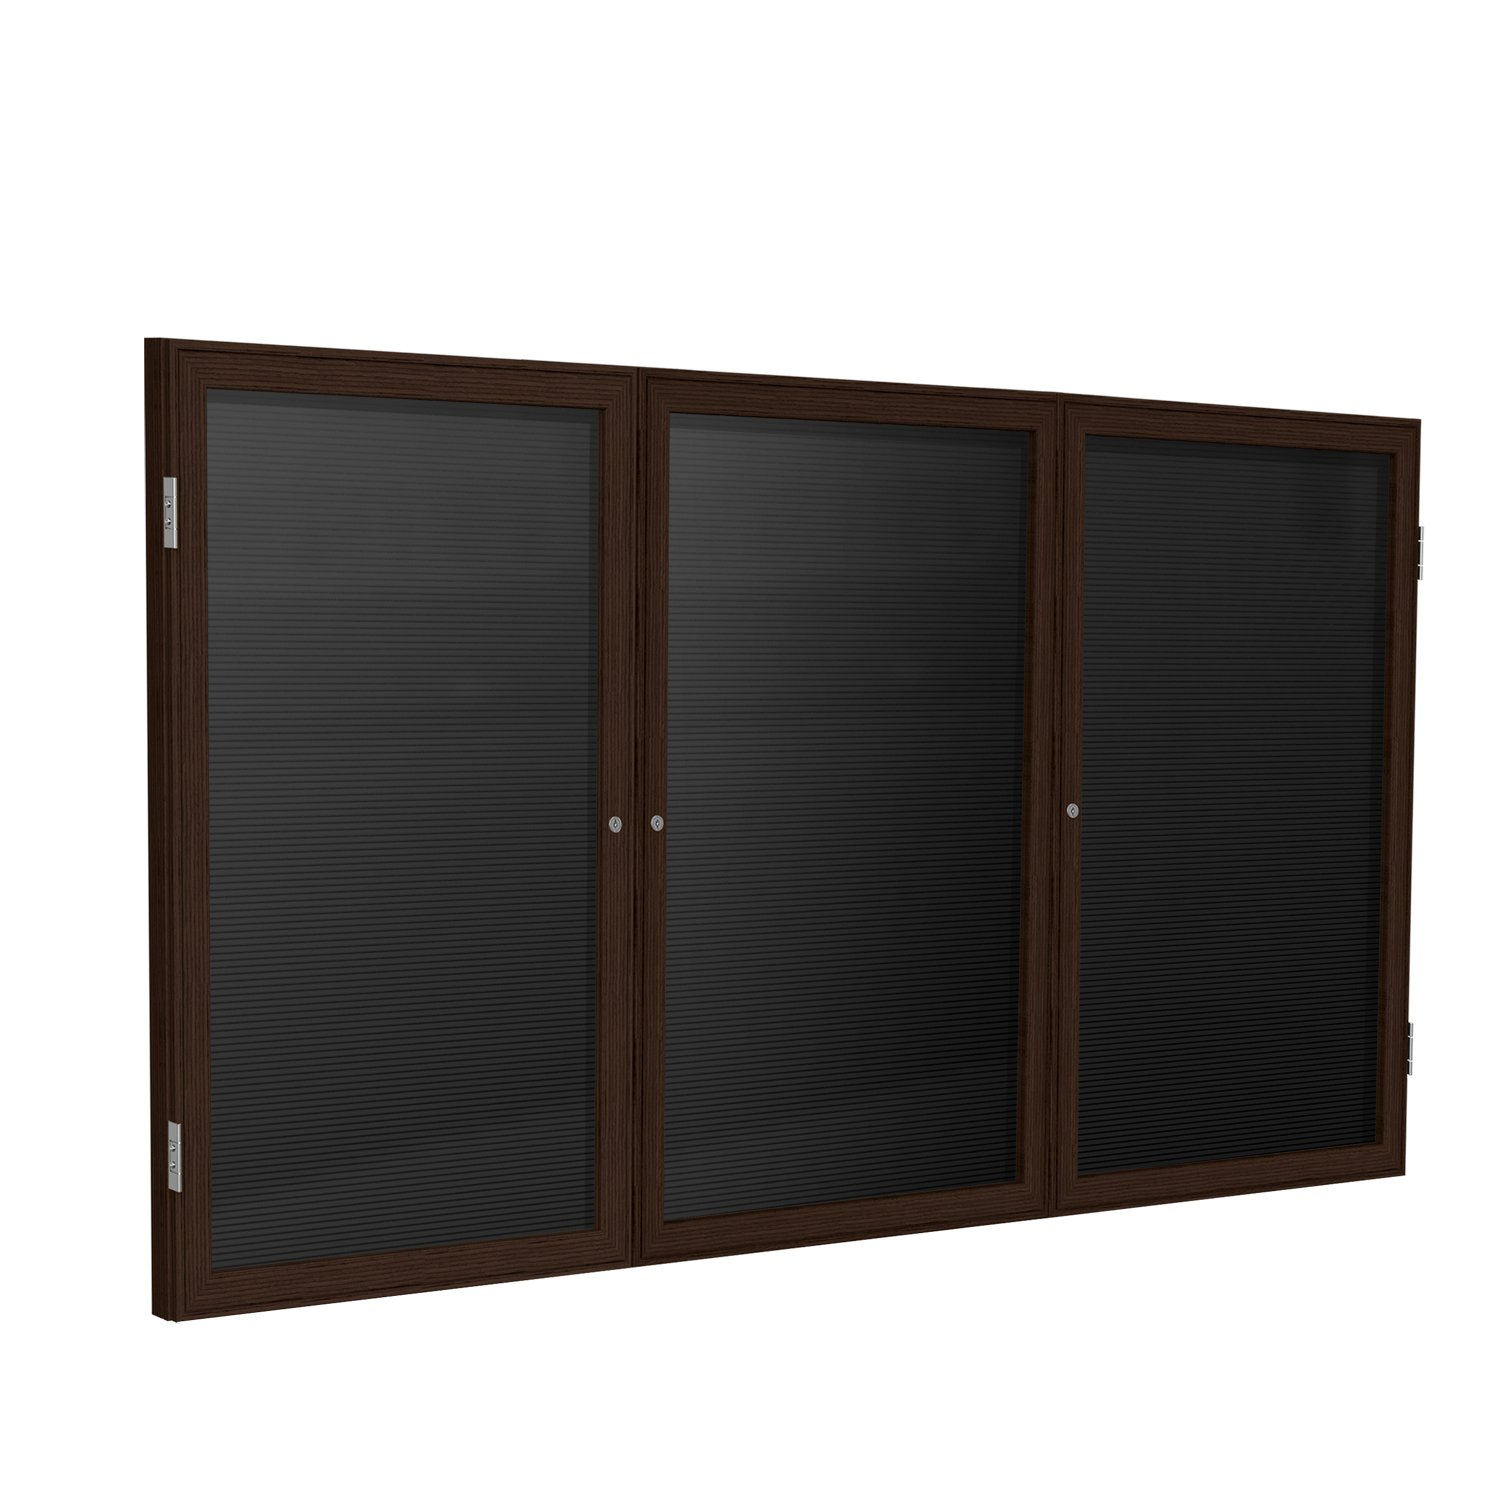 36''x72'' 3-Door Wood Frame Walnut Finish Enclosed Flannel Letter Board, Black by Ghent